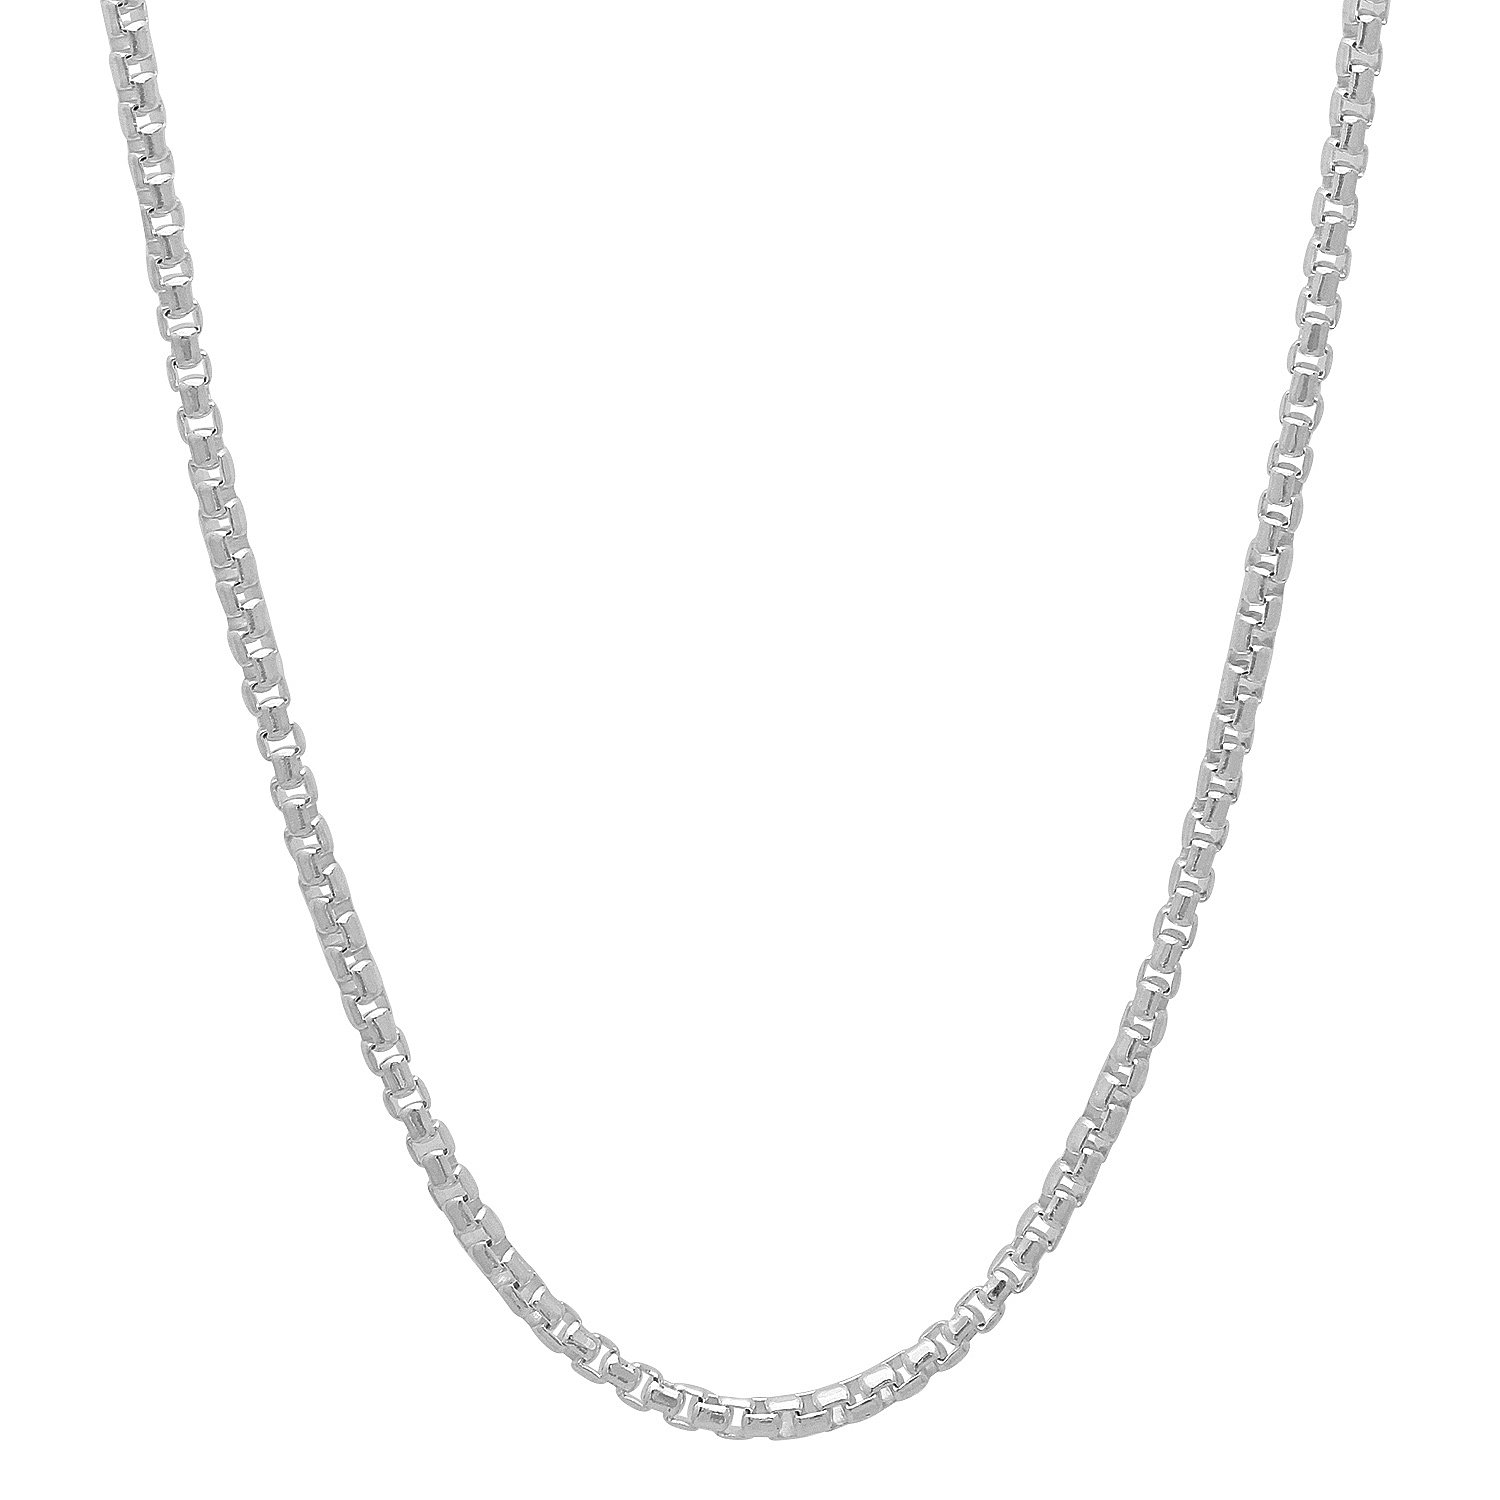 ".925 Sterling Silver Italian Crafted 1.9mm Round Box Chain Necklace, 18""20""22""24""28""30"" - Nickel-Free"